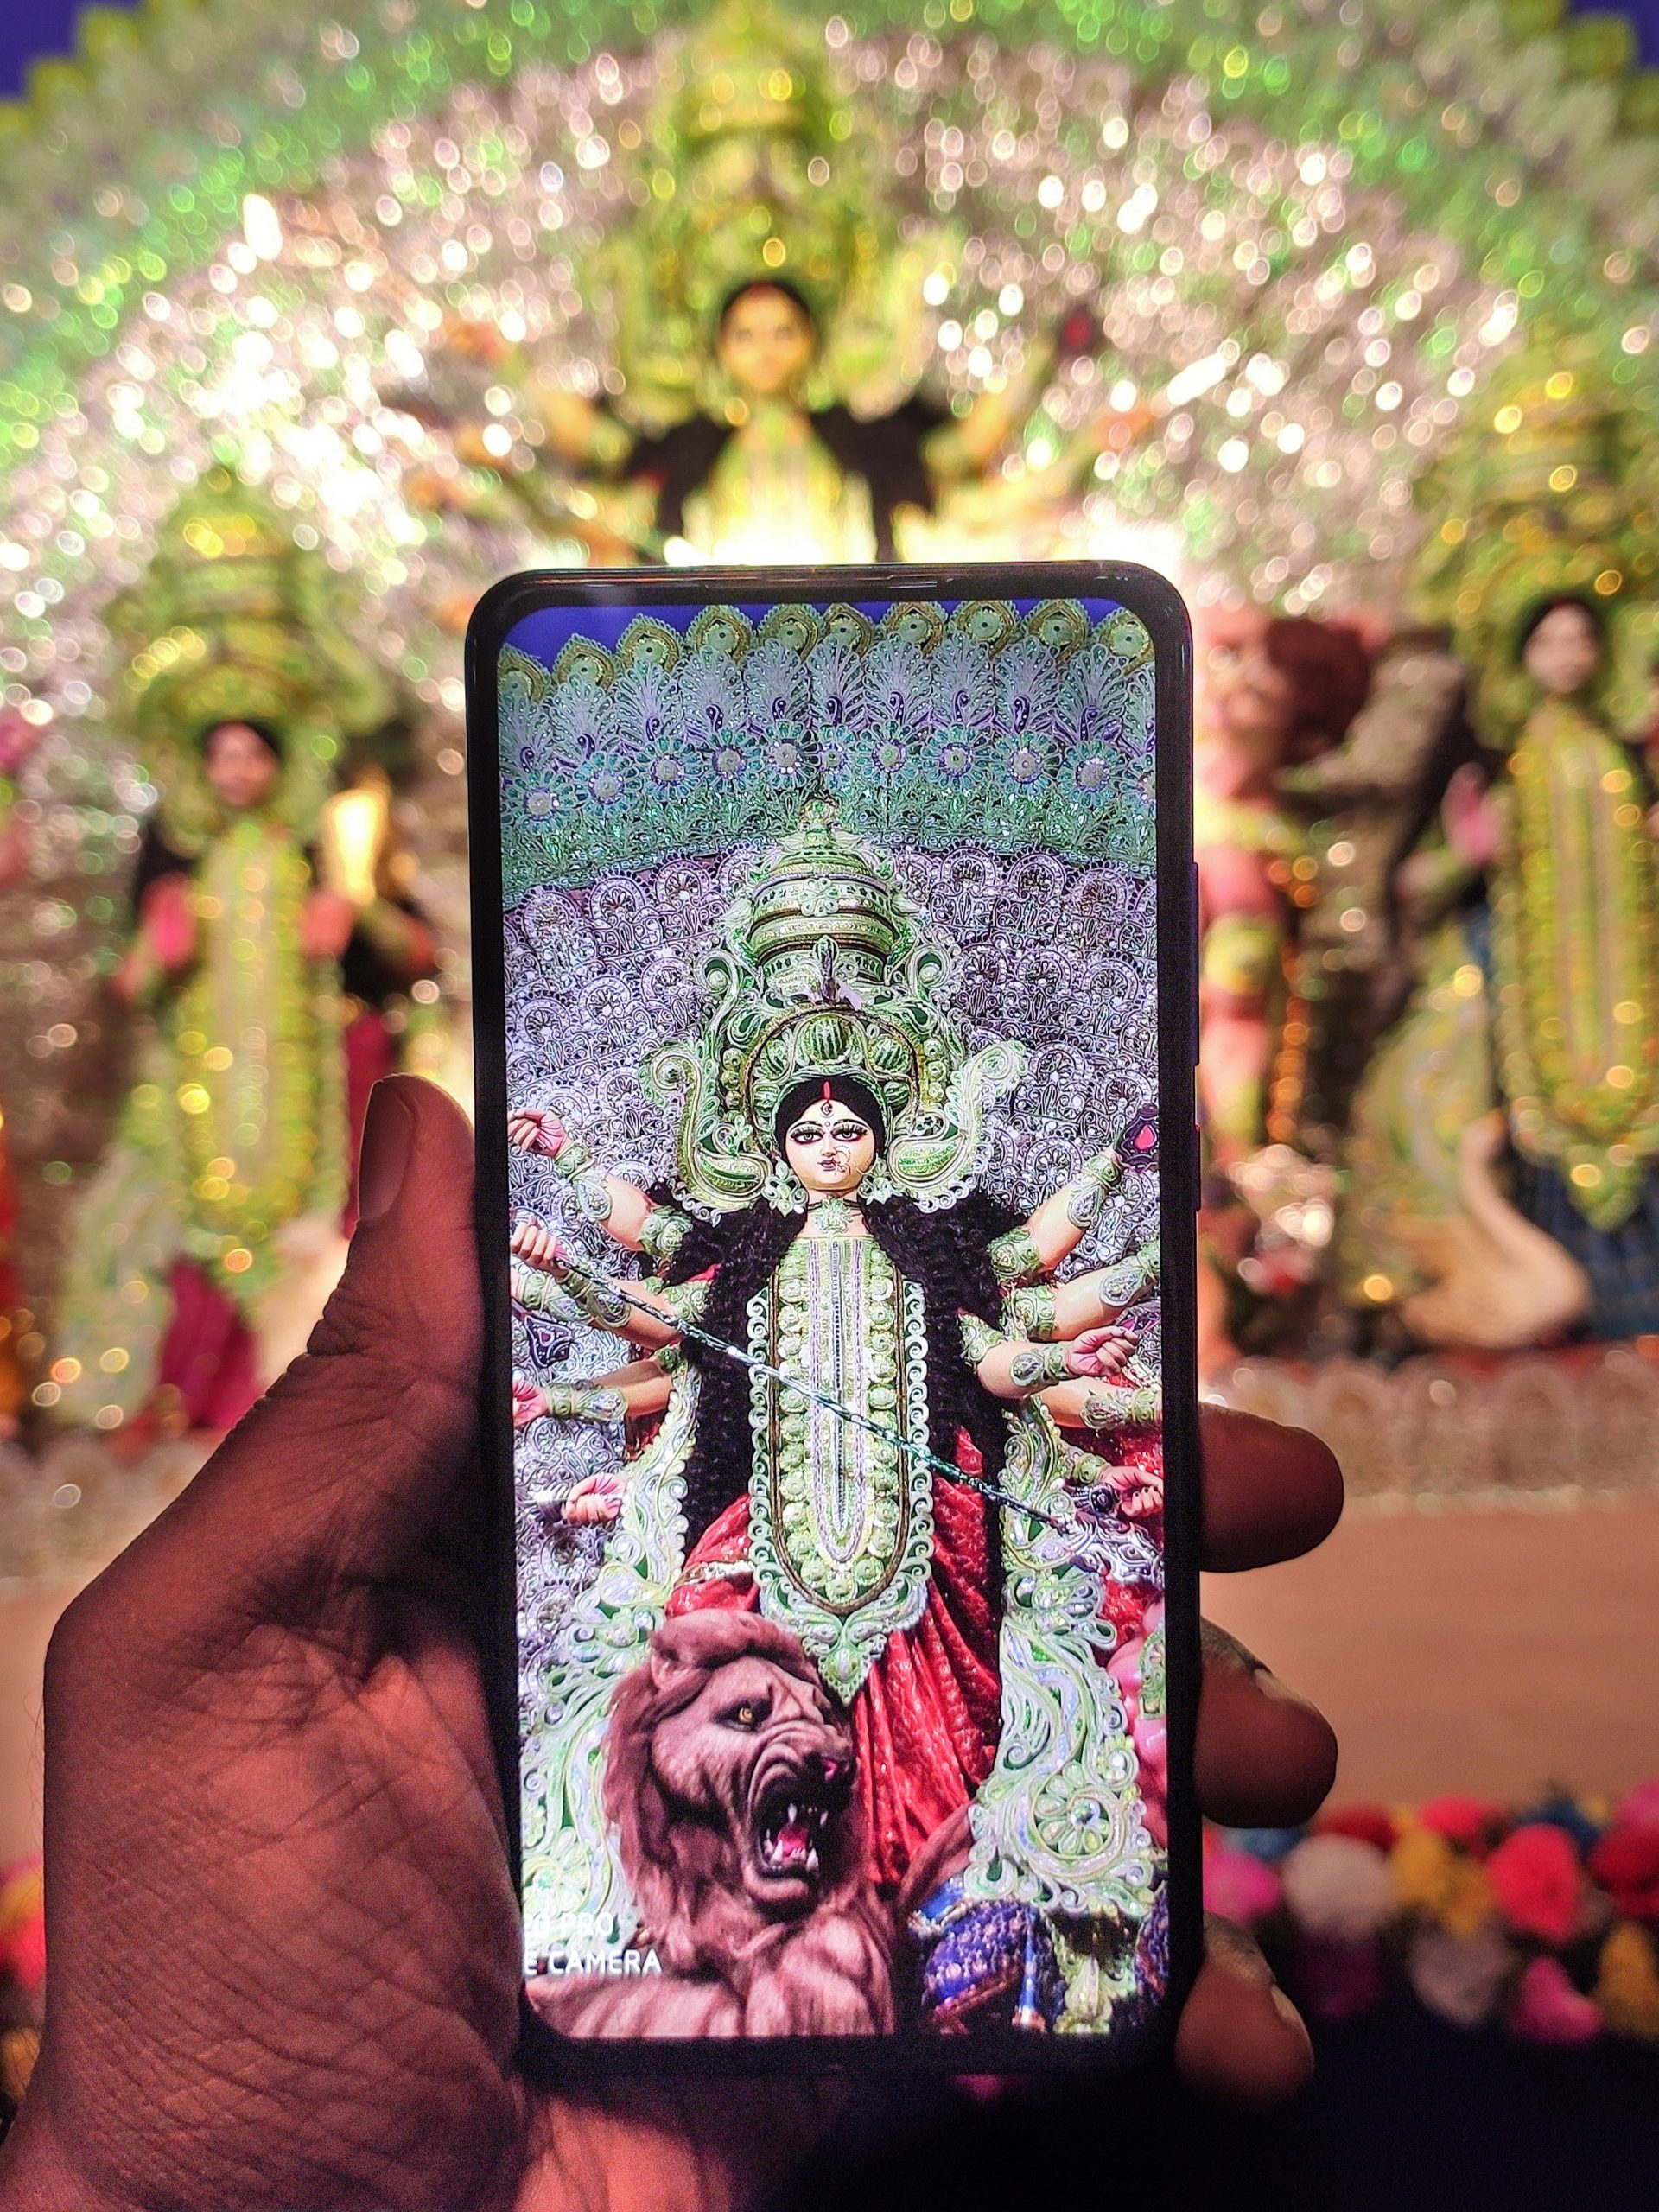 Capturing goddess image with phone